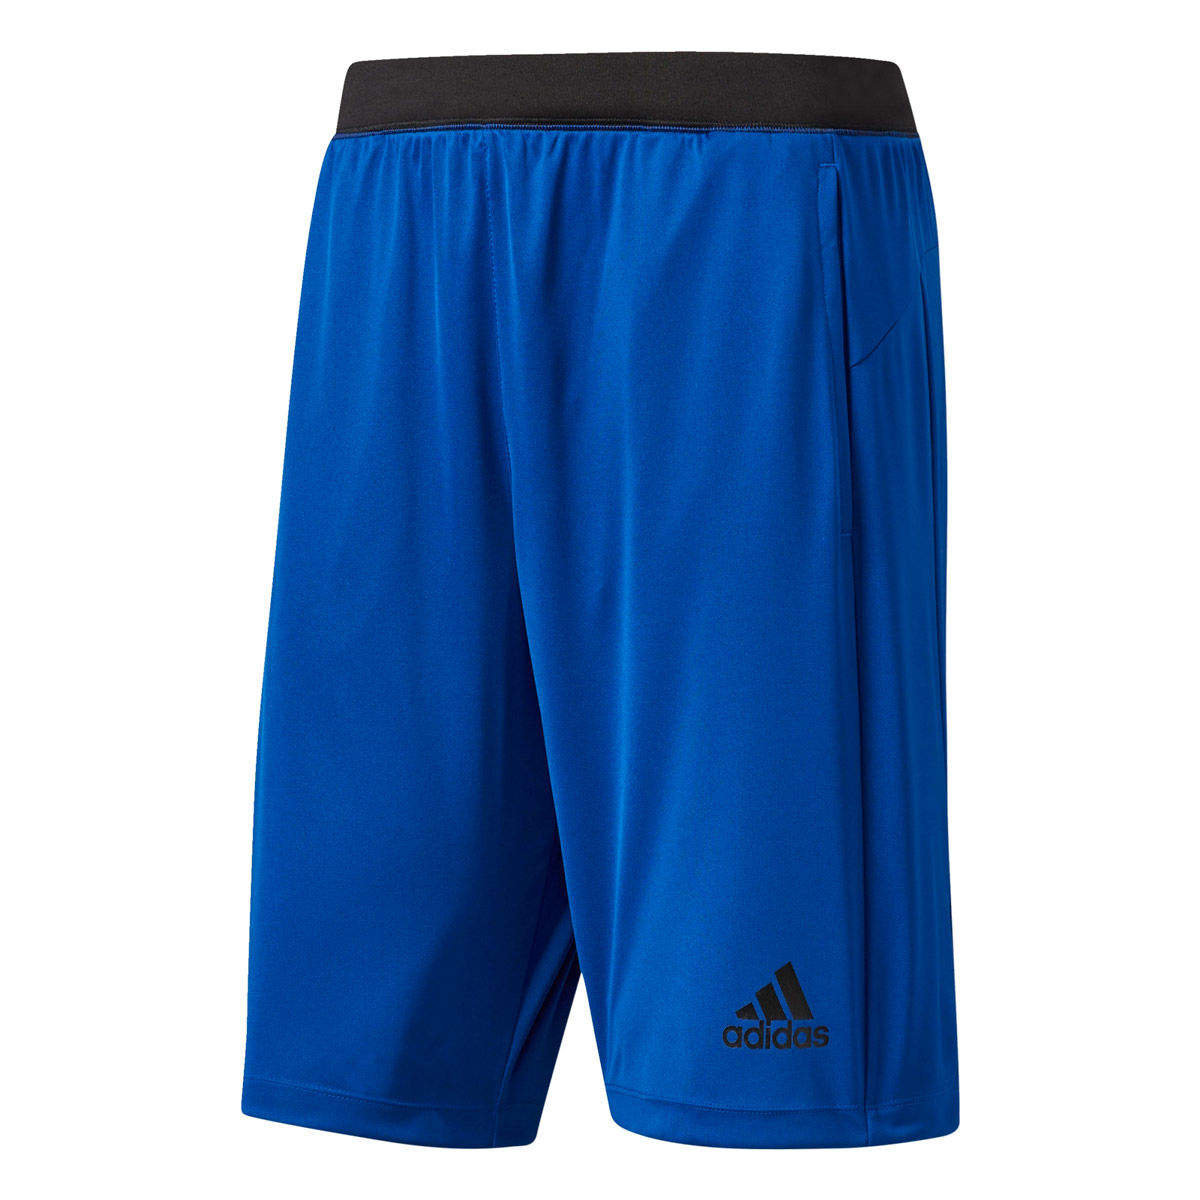 adidas SpeedBreaker Mens Tech Short